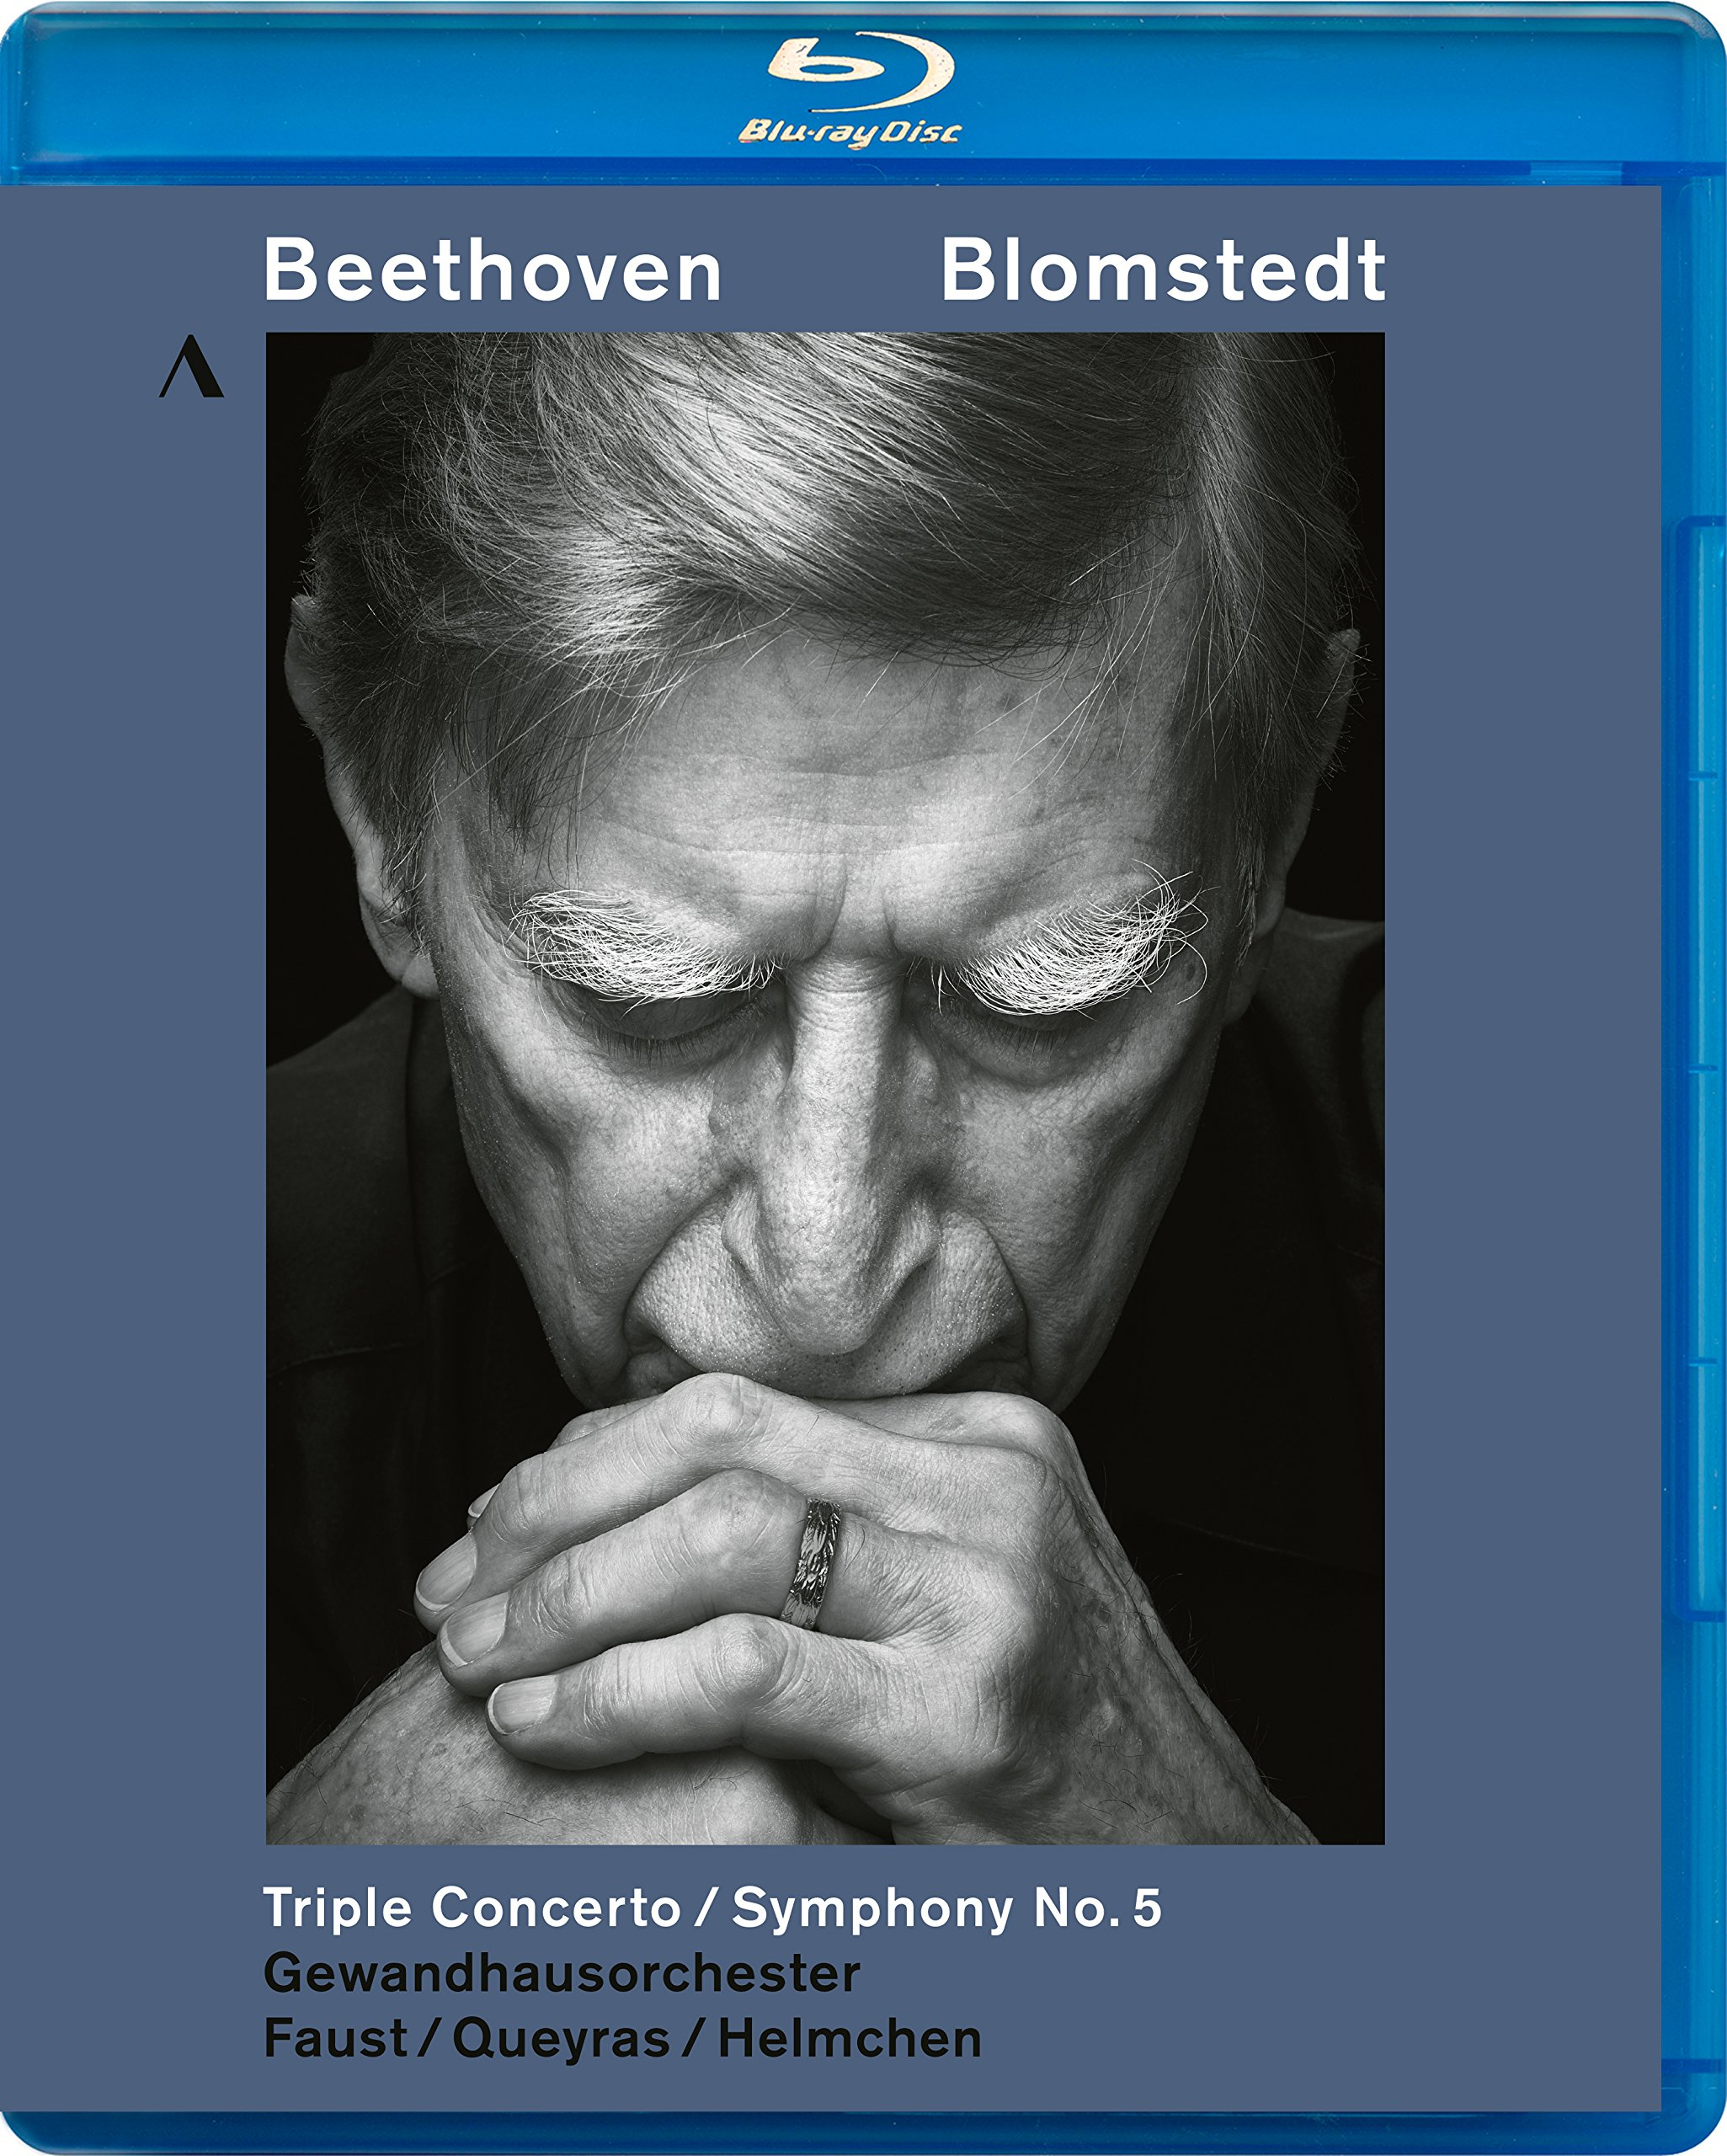 Blu-ray : BEETHOVEN - FAUST - BLOMSTEDT - Beethoven: Triple Concerto & Symphony 5 (Blu-ray)